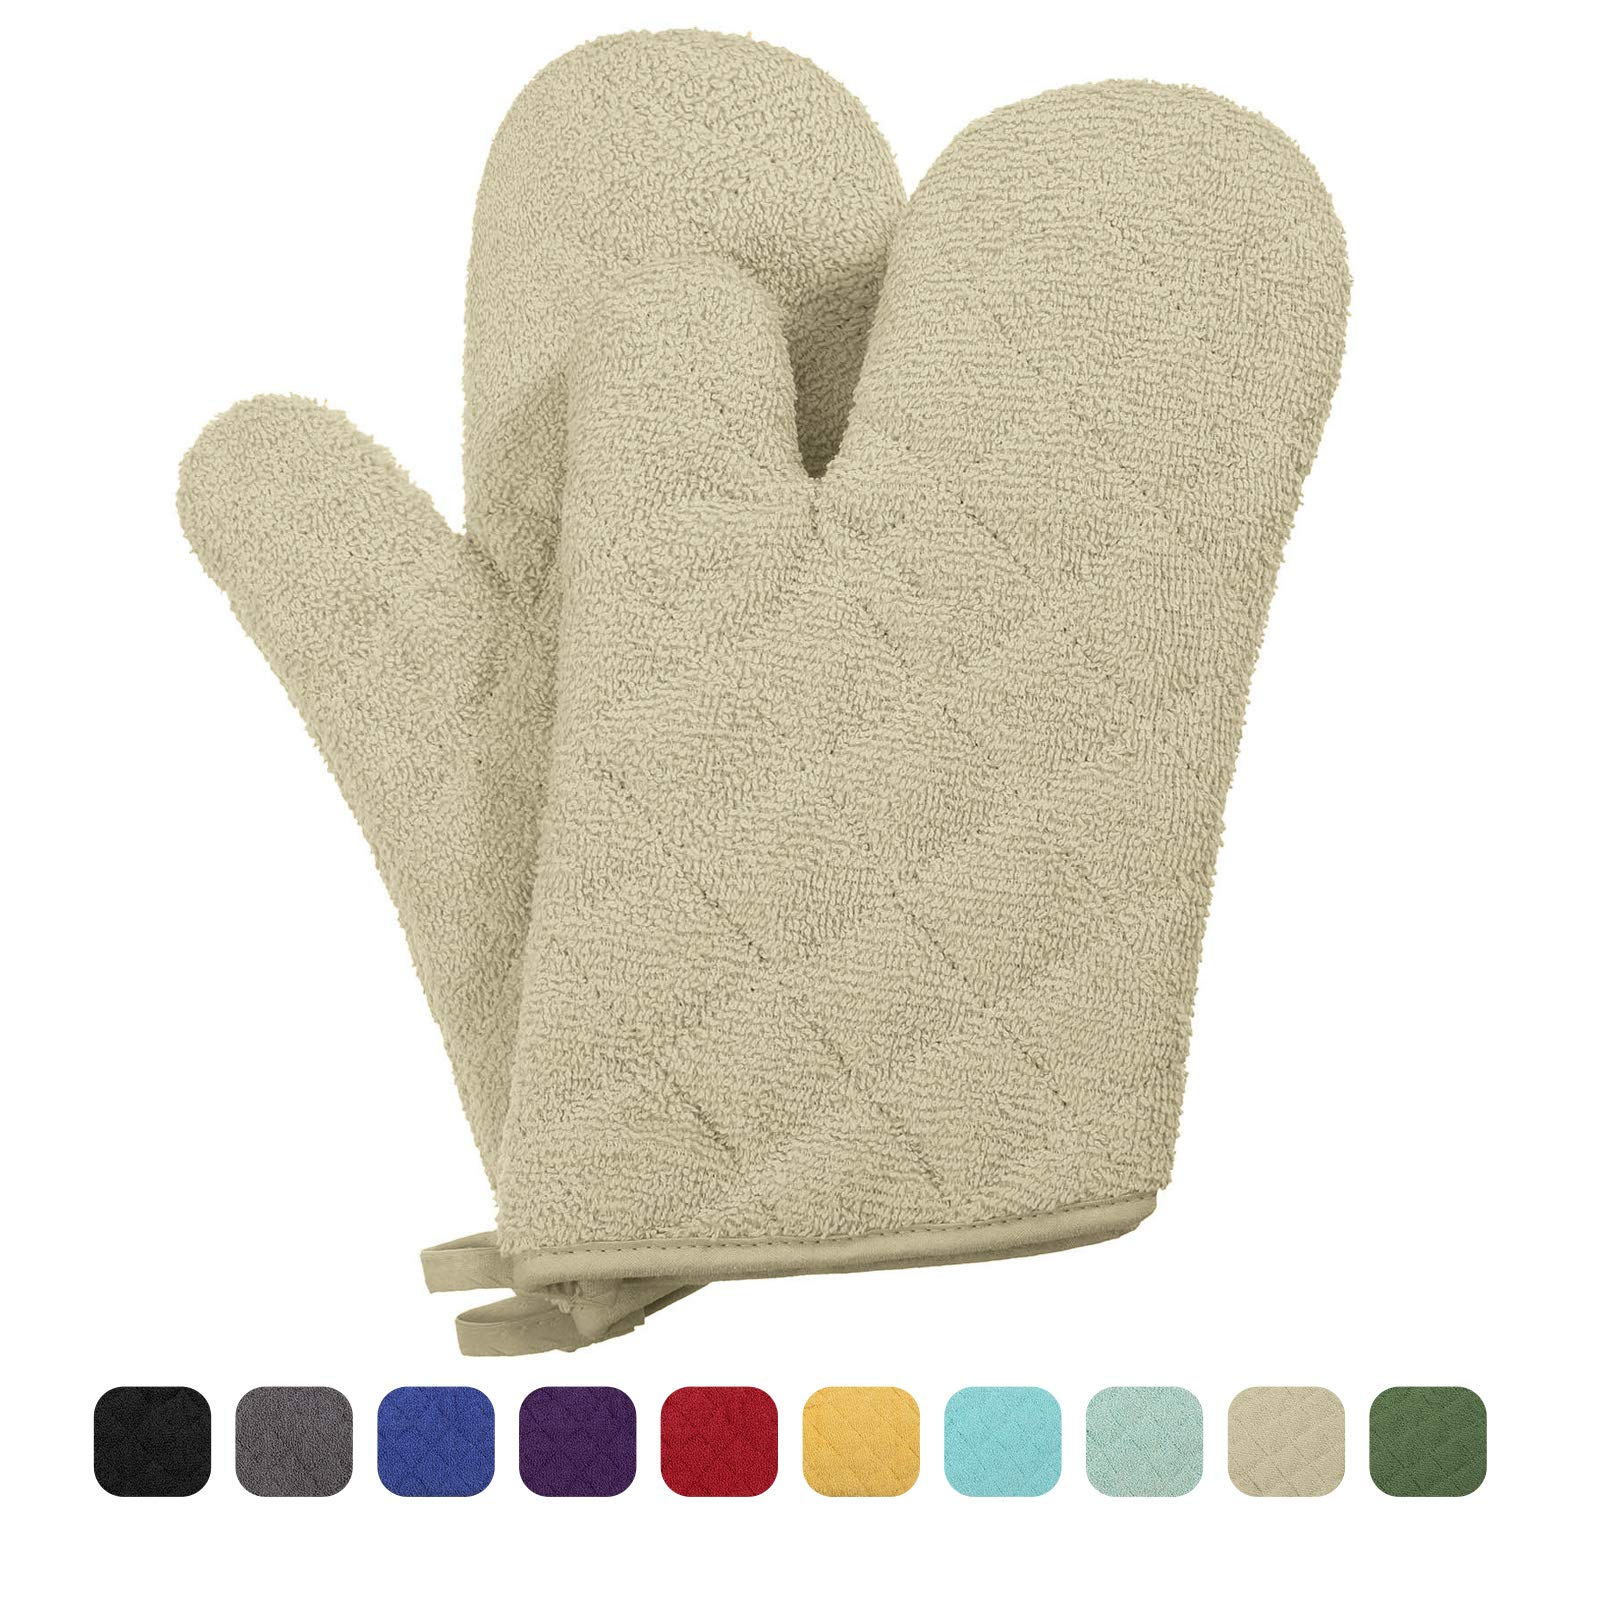 VEEYOO 100% Cotton Oven Mitts Terry Heat Resistant Oven Gloves for Kitchen Set of 2, 7 x 12 Khaki